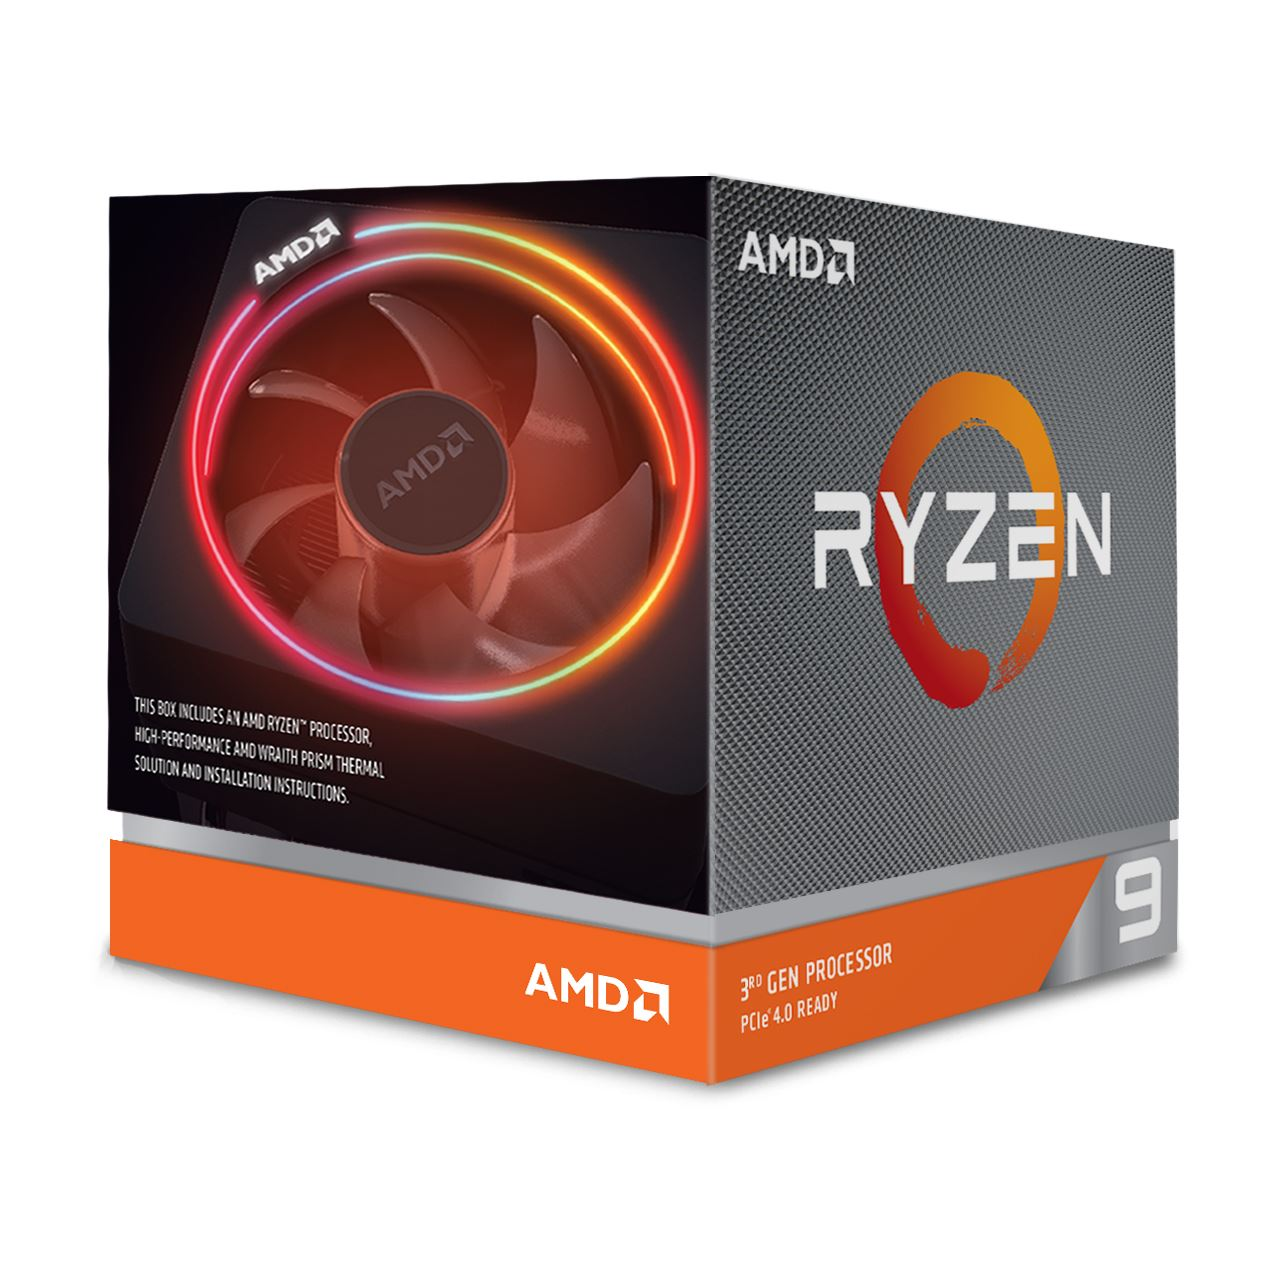 2199-AMD-RGB-individuell